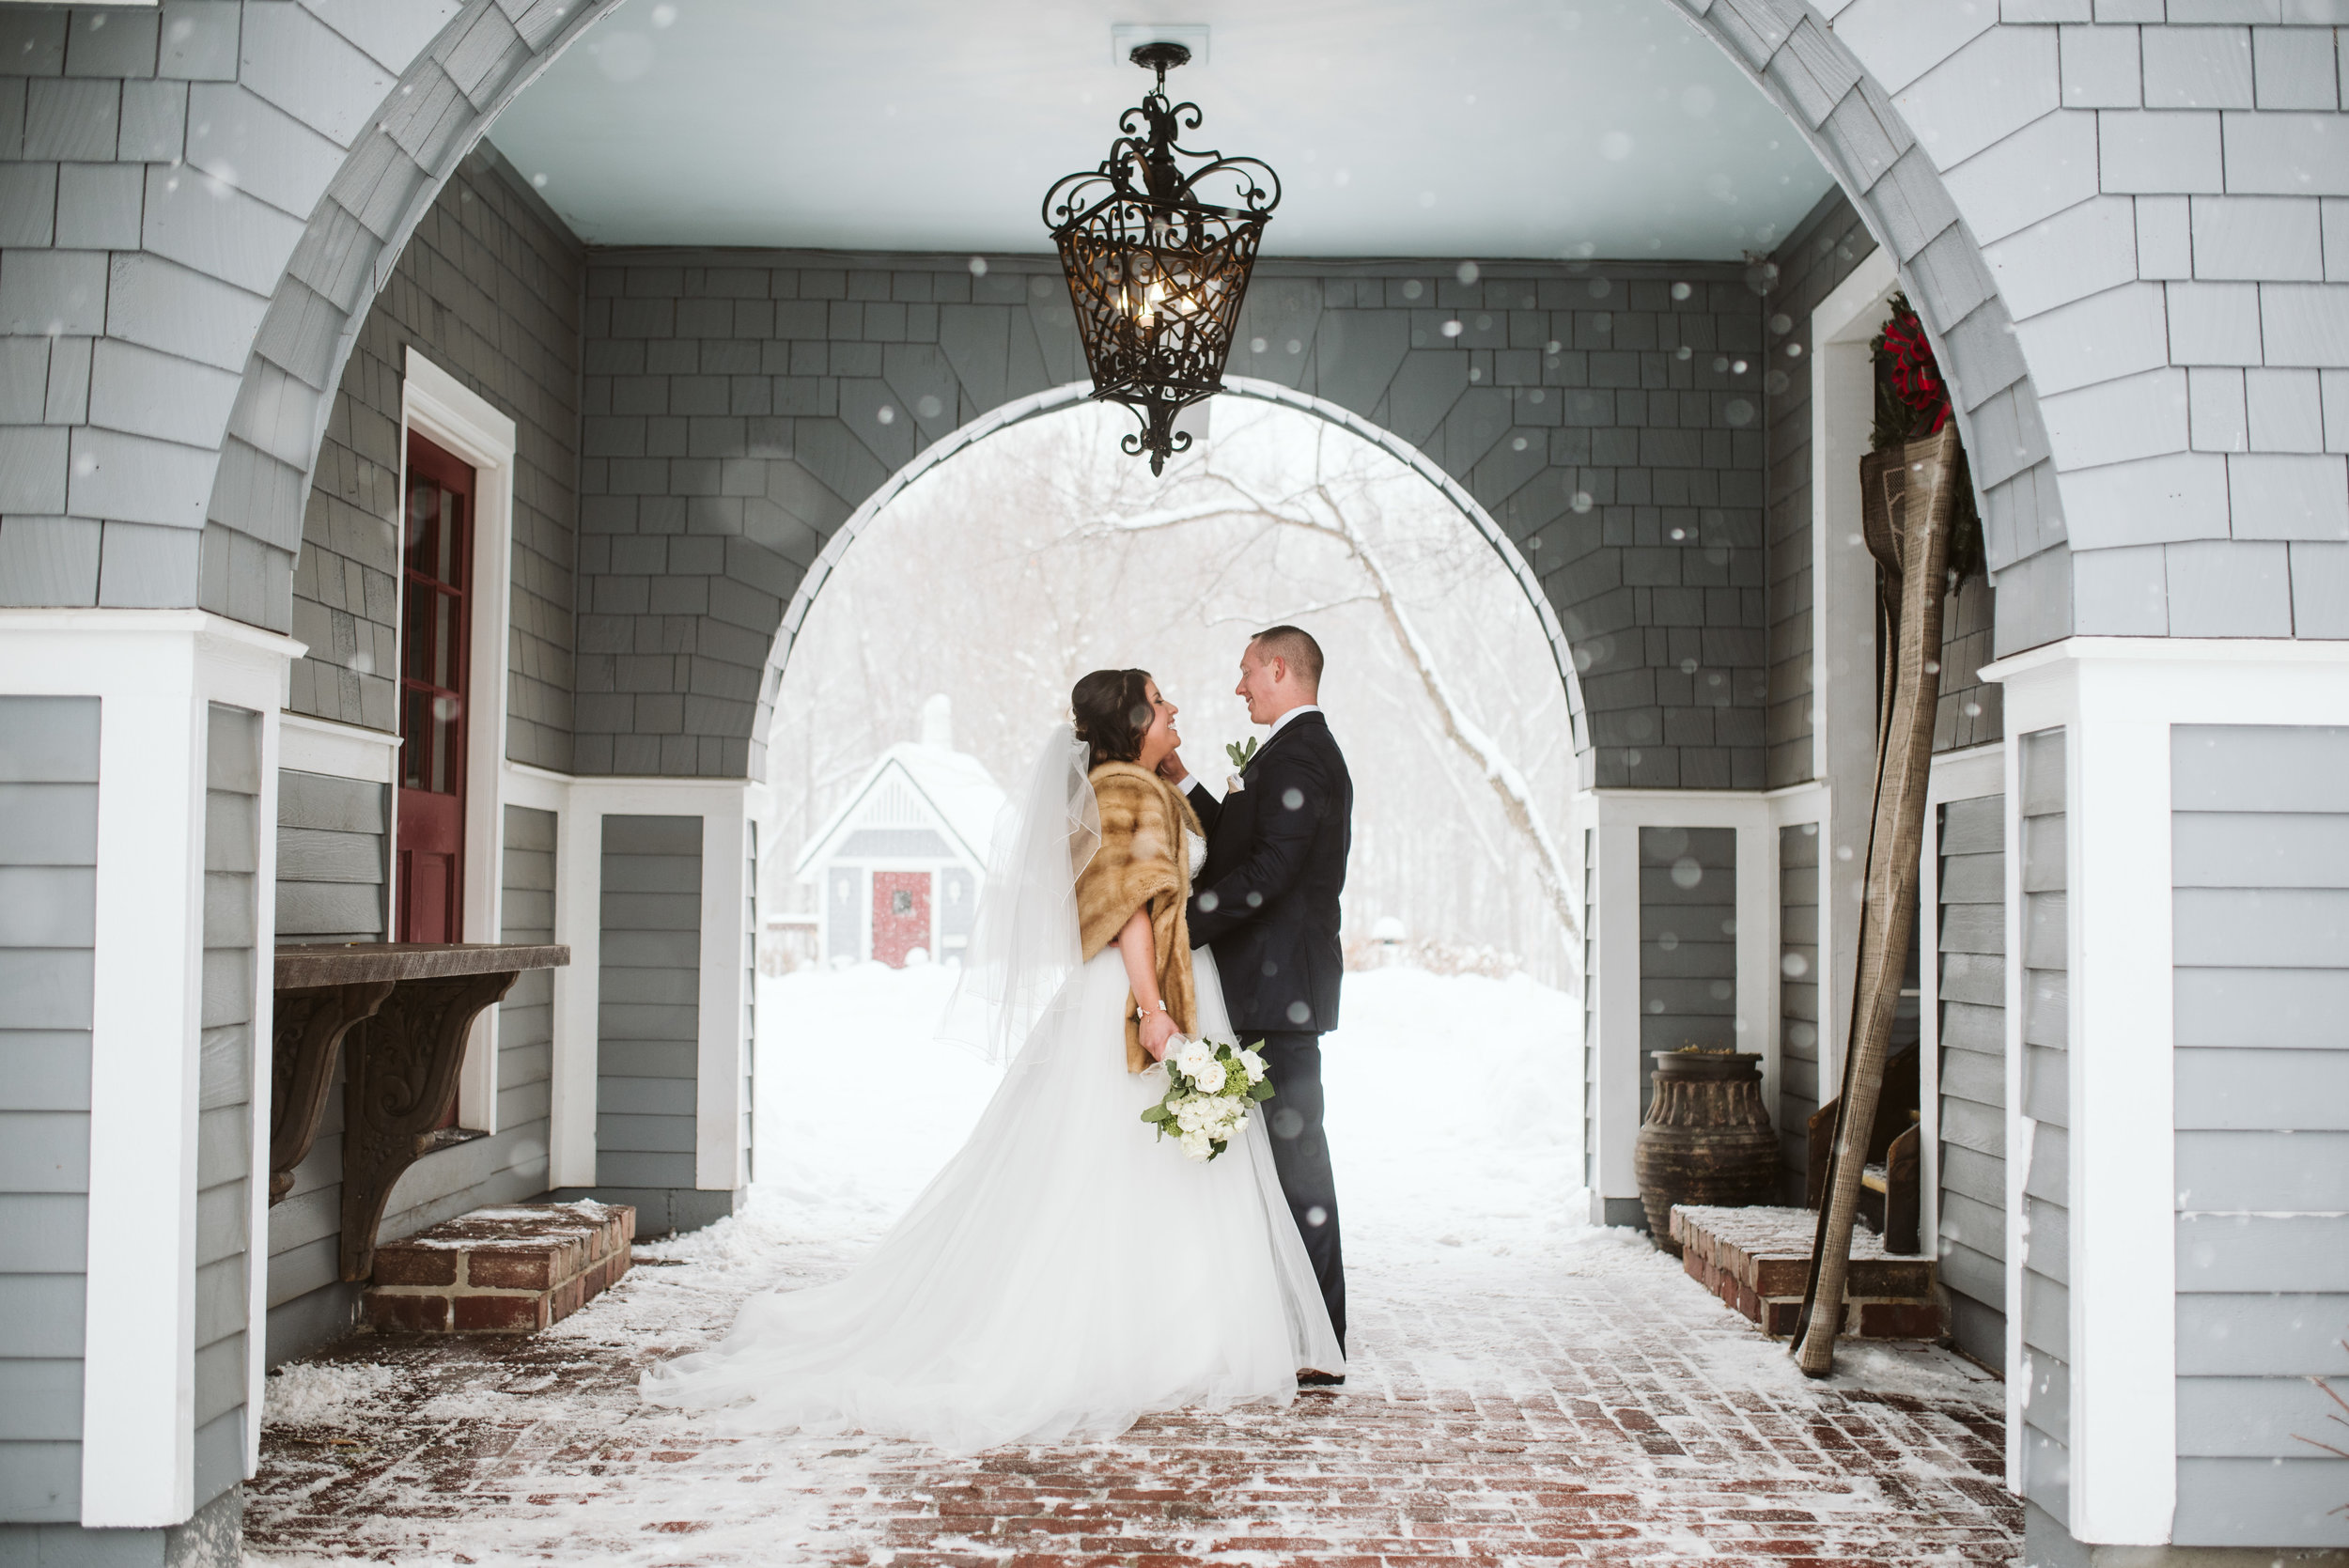 Bride and groom under archway during snow storm